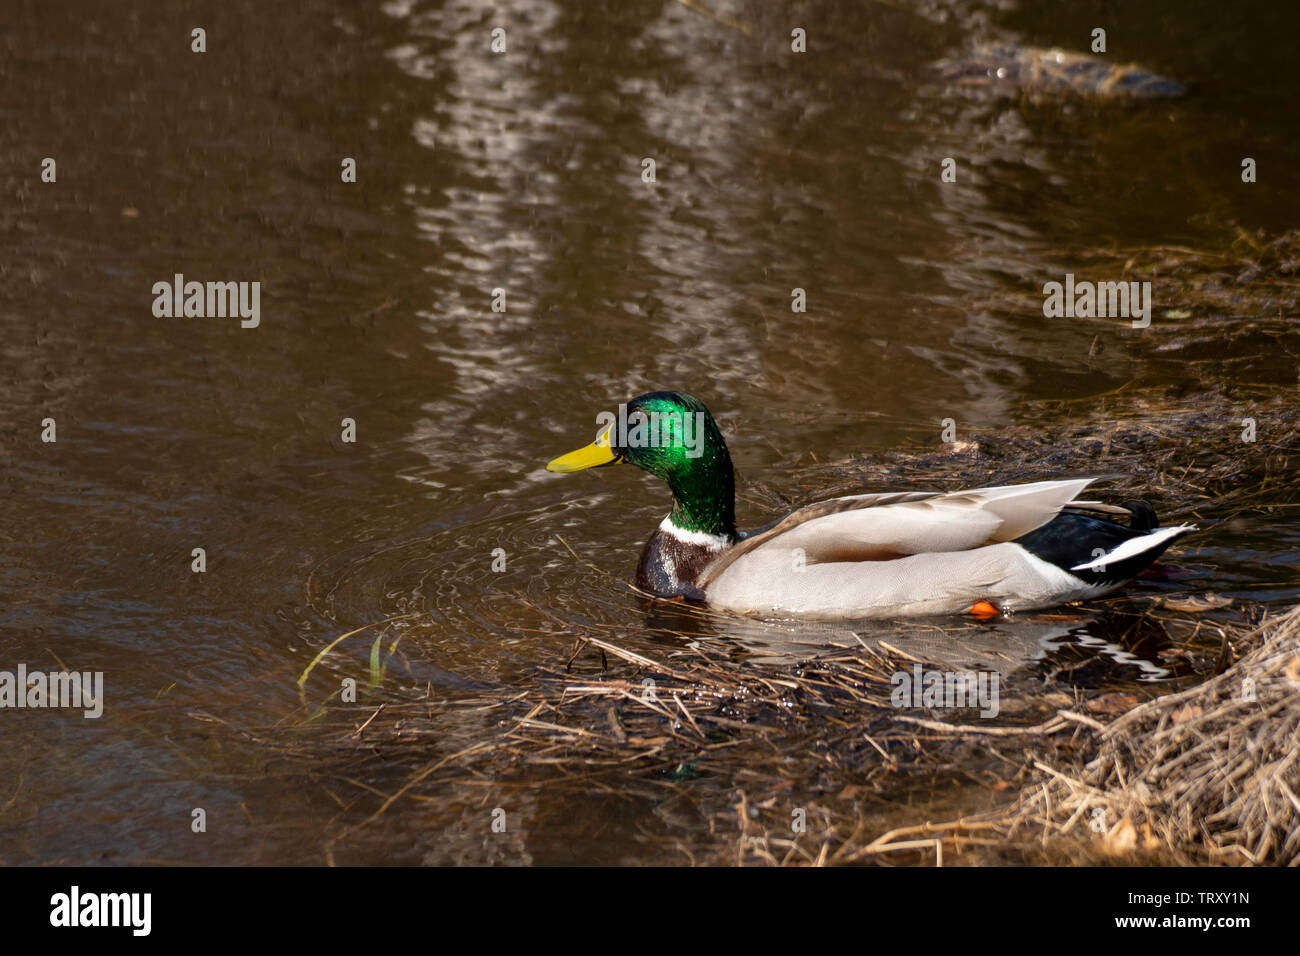 Swimming Mallard (Anas platyrhynchos) with water drops on the feathers, picture from the Northern Sweden. - Stock Image